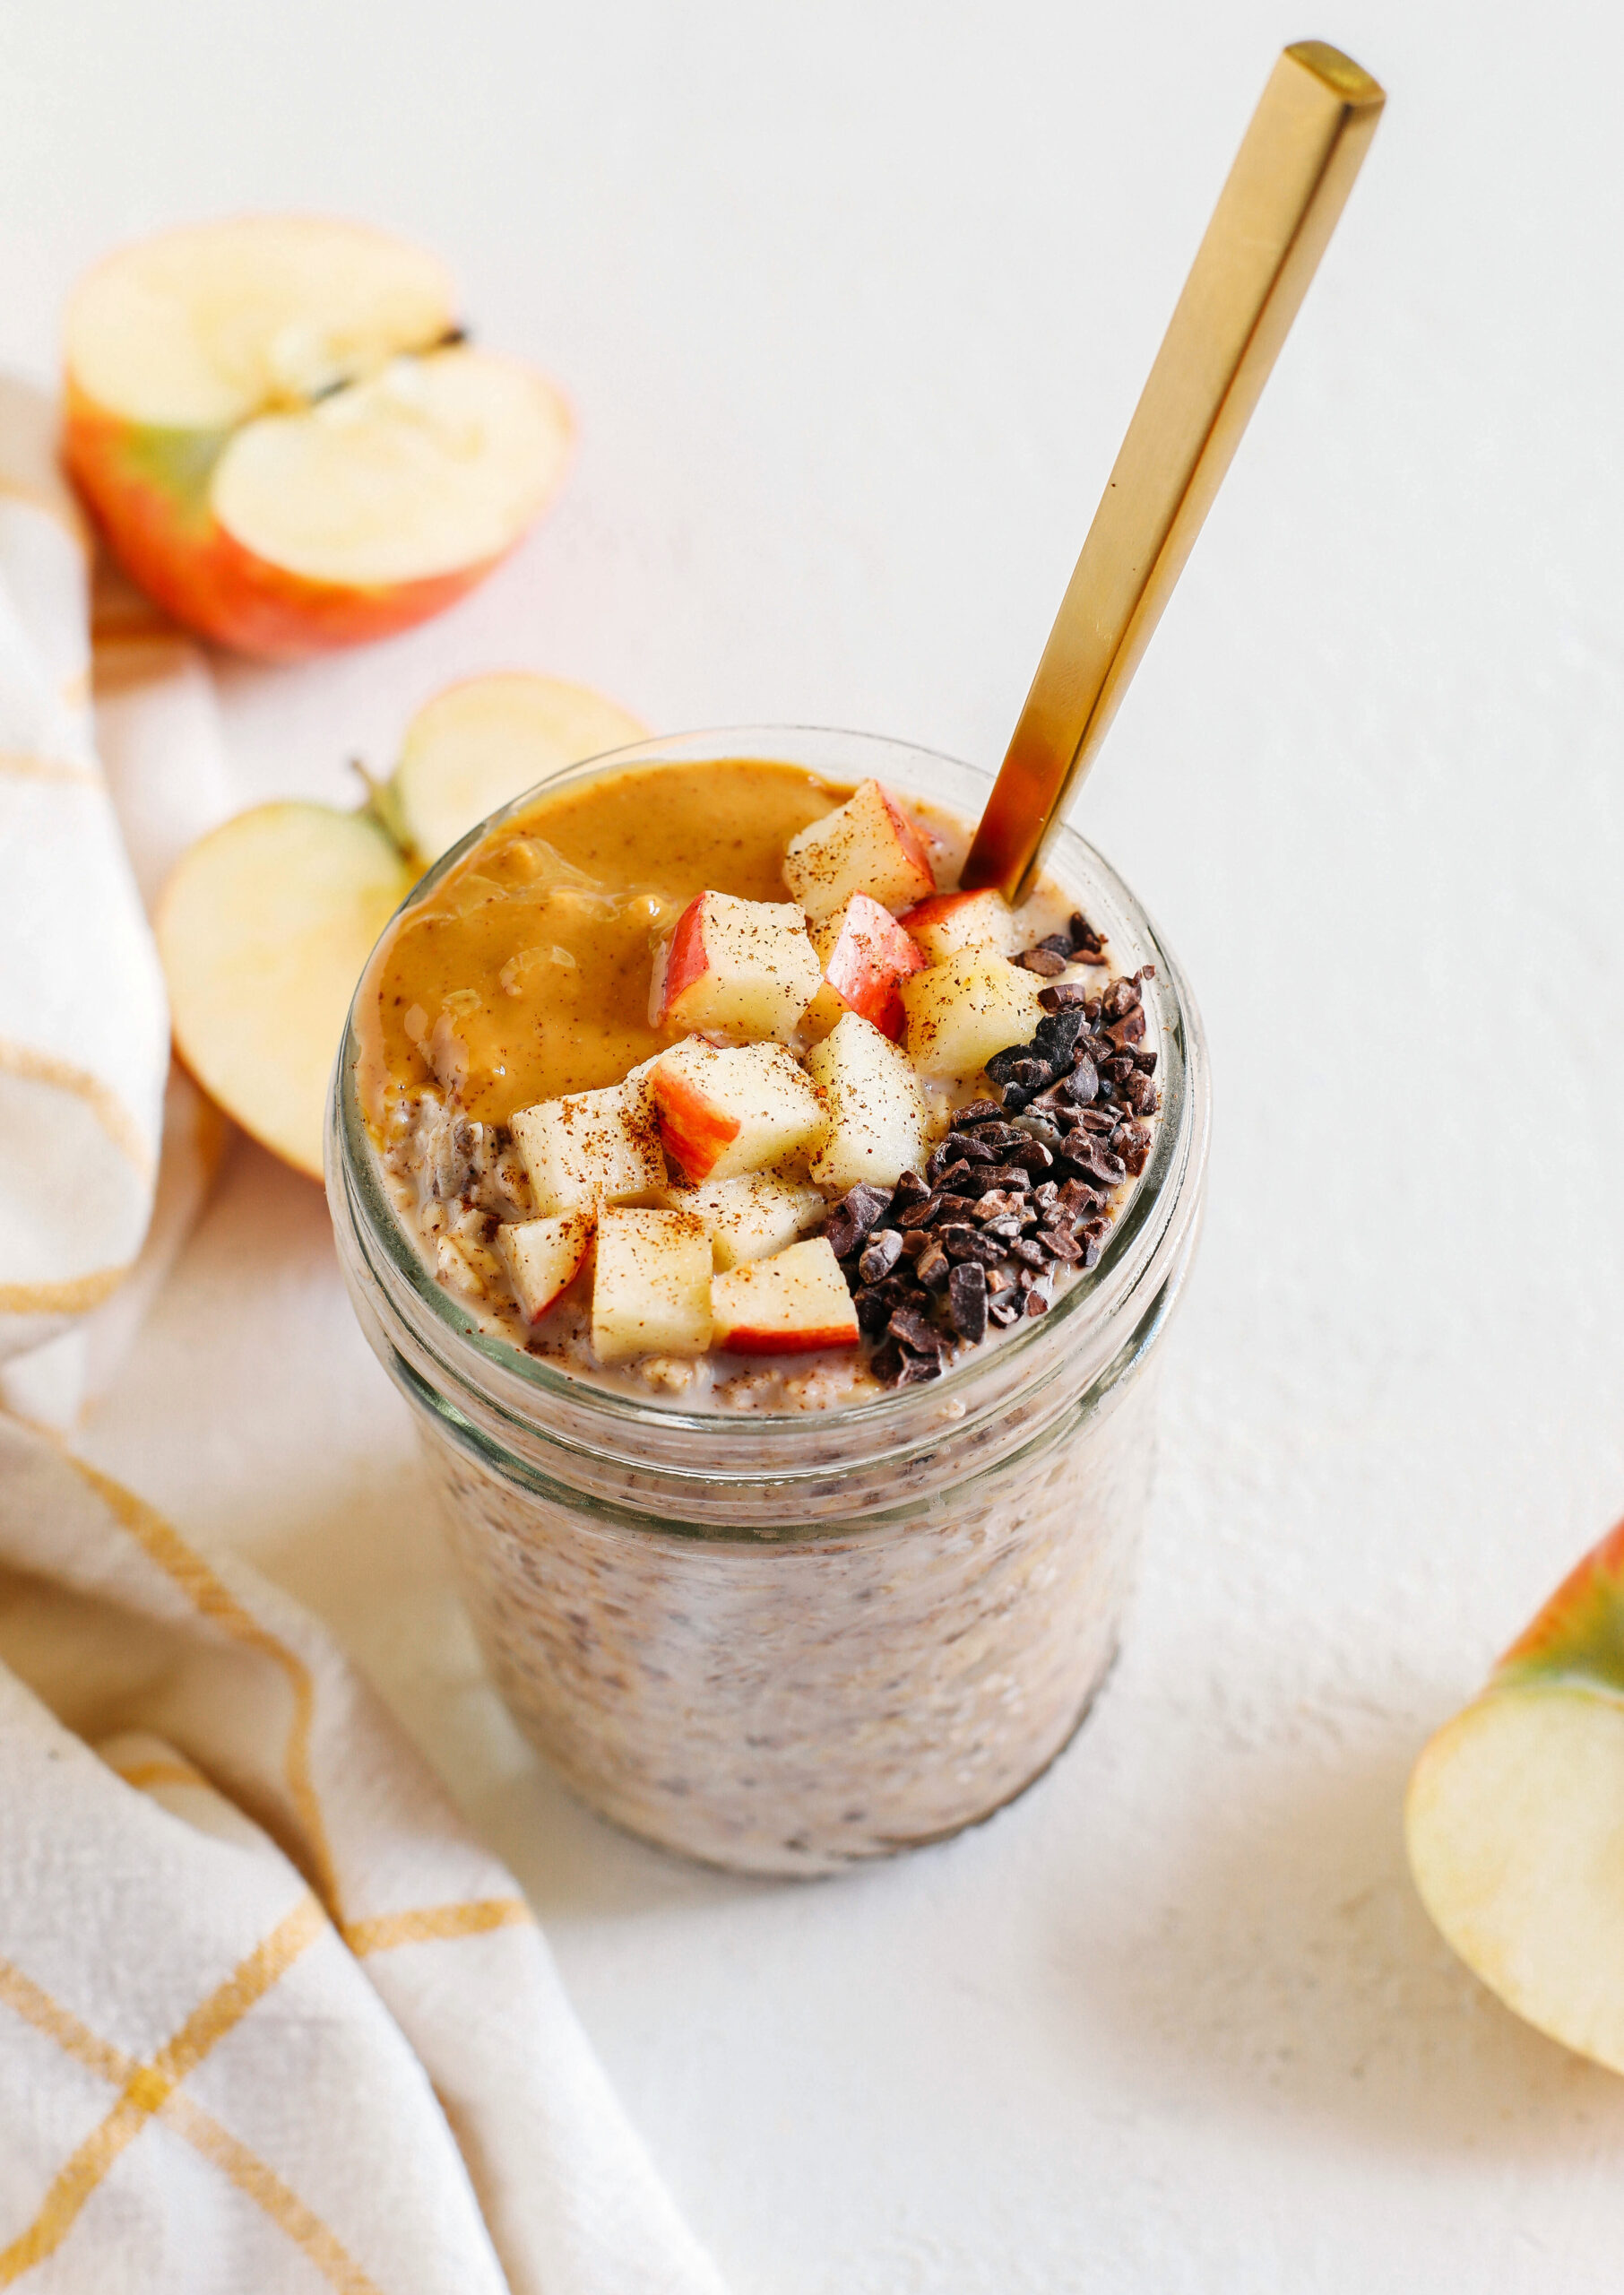 Delicious Apple Pie Overnight Oats easily made in just minutes the night before giving you a deliciously healthy breakfast as soon as you wake up!